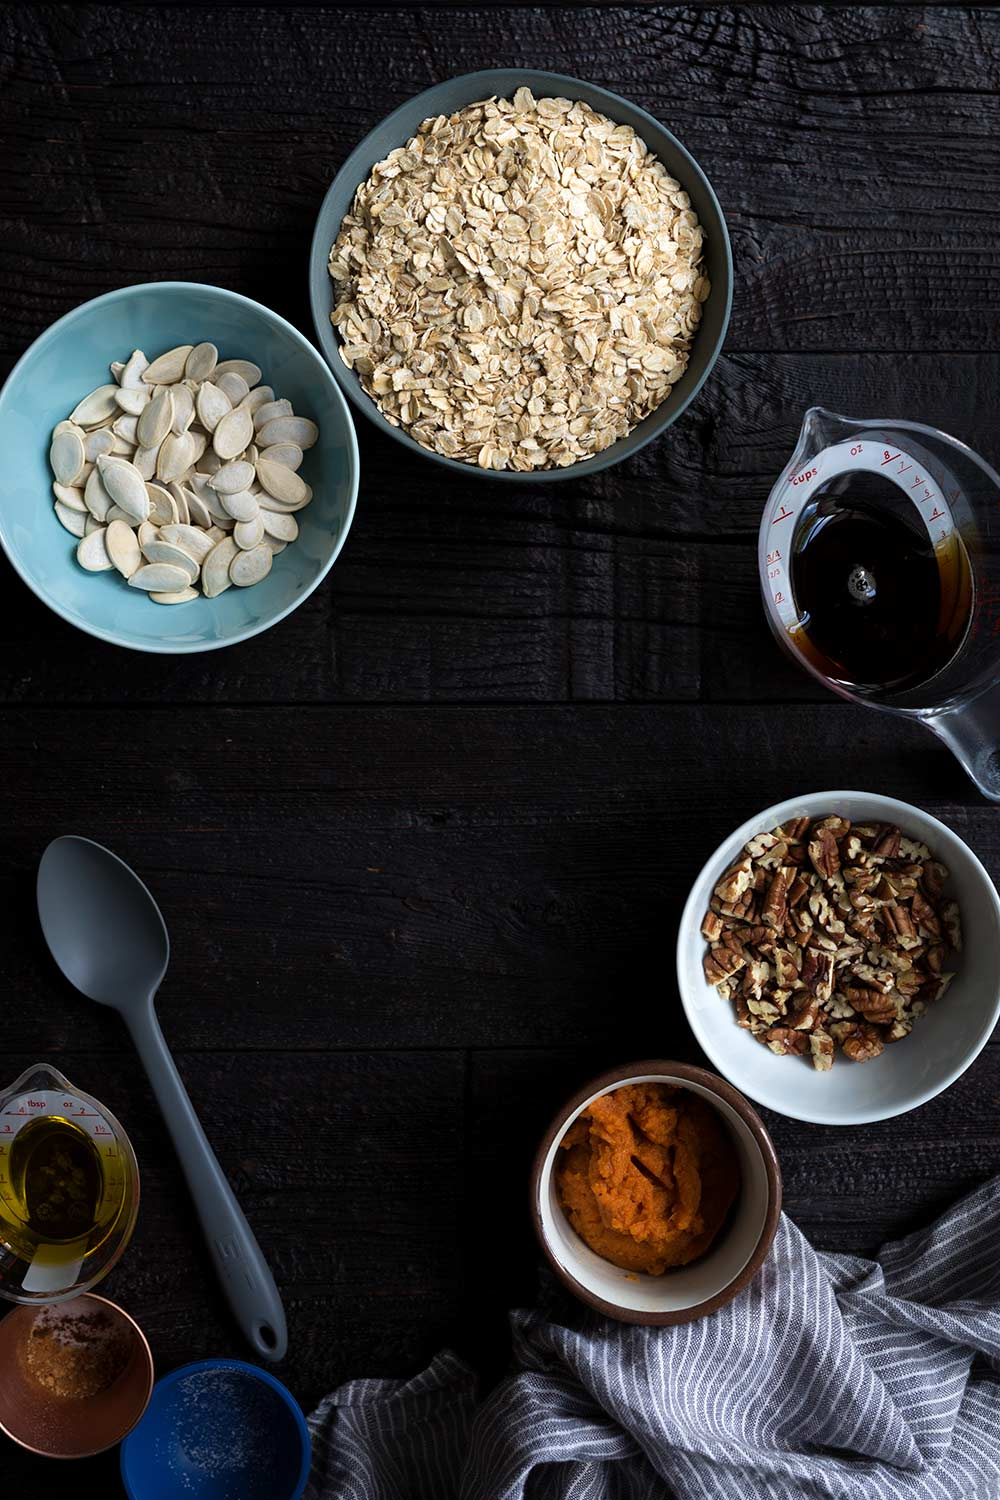 Ingredients to prepare pumpkin granola, including rolled oats, pumpkin seeds, dark amber maple syrup, pecans, pumpkin, and spices.